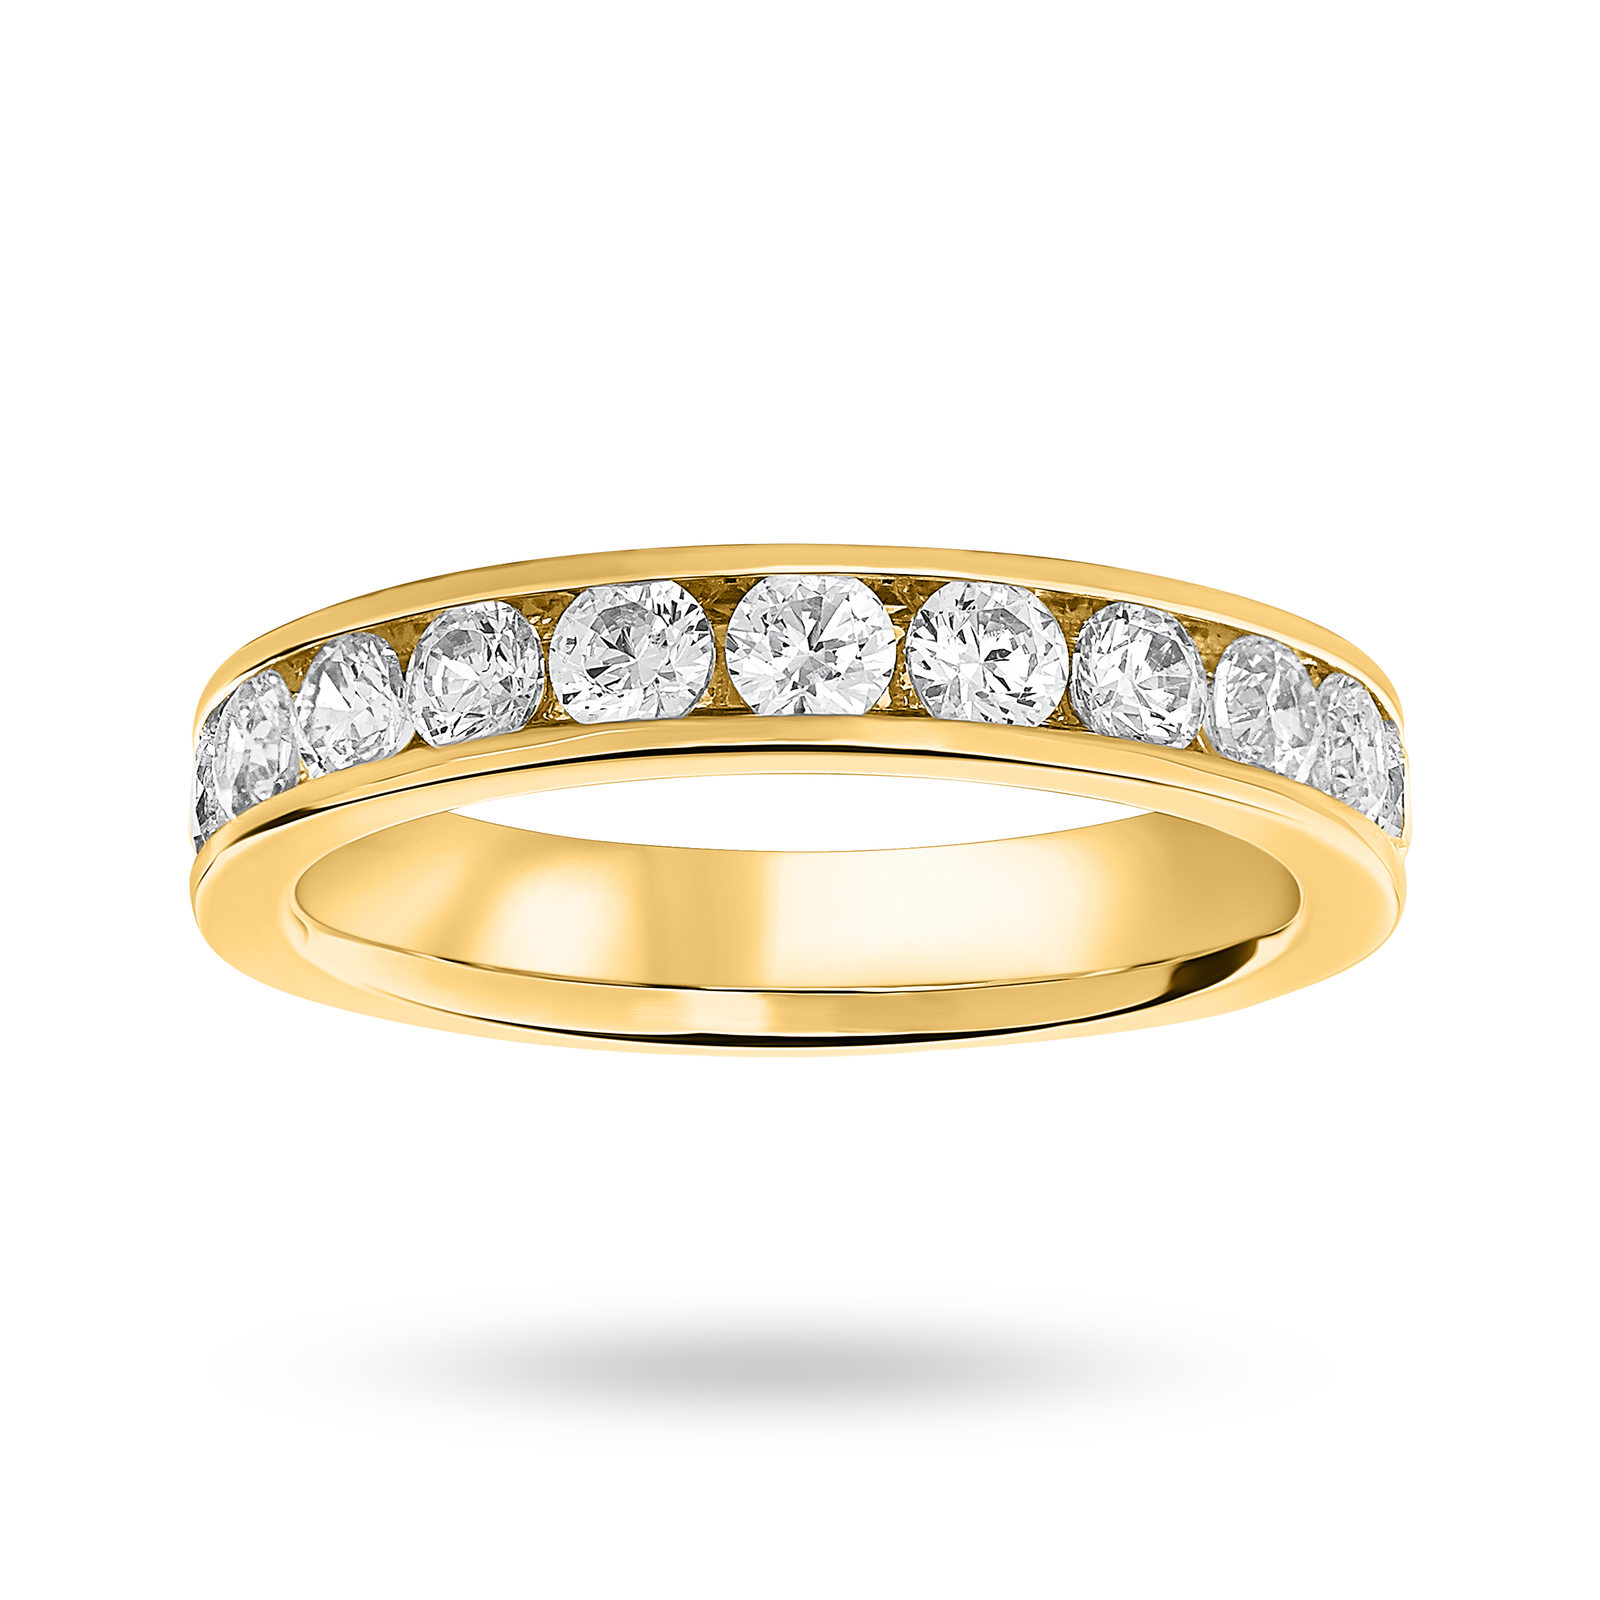 18ct Yellow Gold 1.00ct Half Eternity Ring - Ring Size O